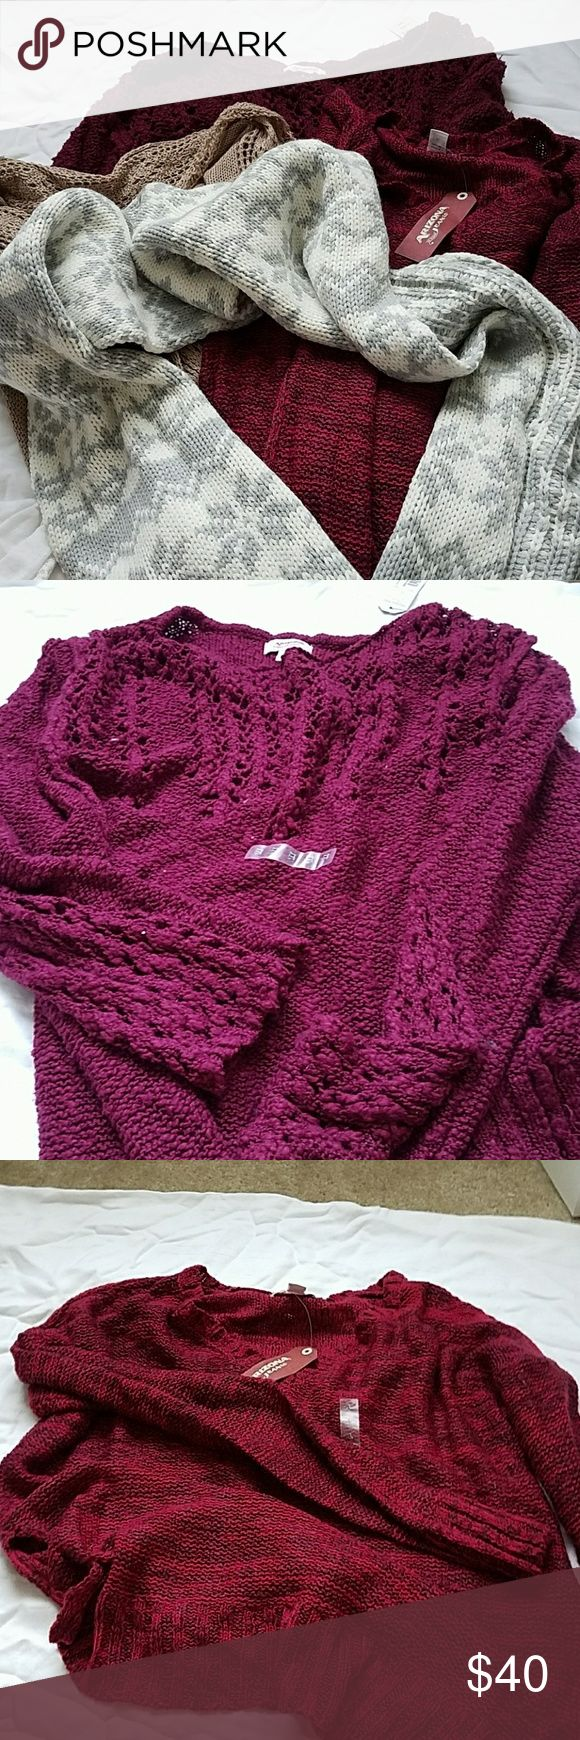 MUST GO- 4 SHIRTS, 2 SCARVES AND A BEANIE 4 shirts to fit size L. first 2 sweaters, cream scarf and beanie are NWT. you will be getting all 7 items for the price listed. please comment if you have questions. Sweaters